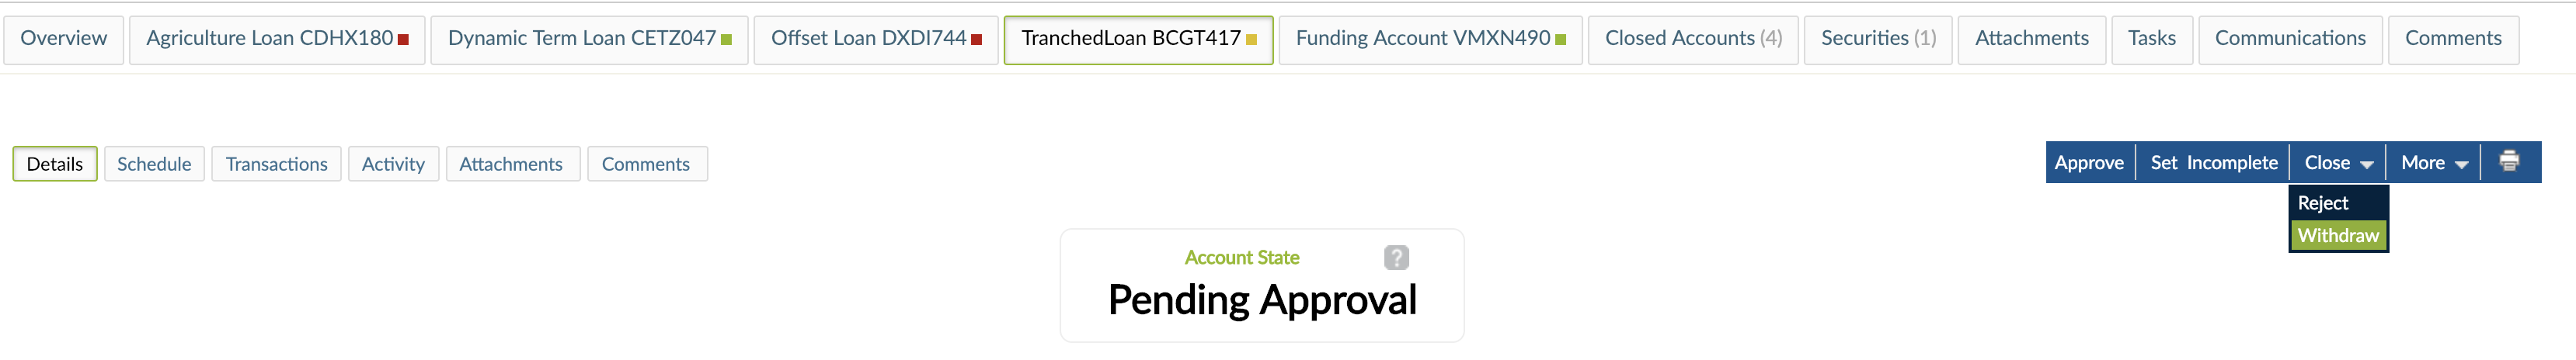 Withdrawing a Loan Account form Close drop-down menu